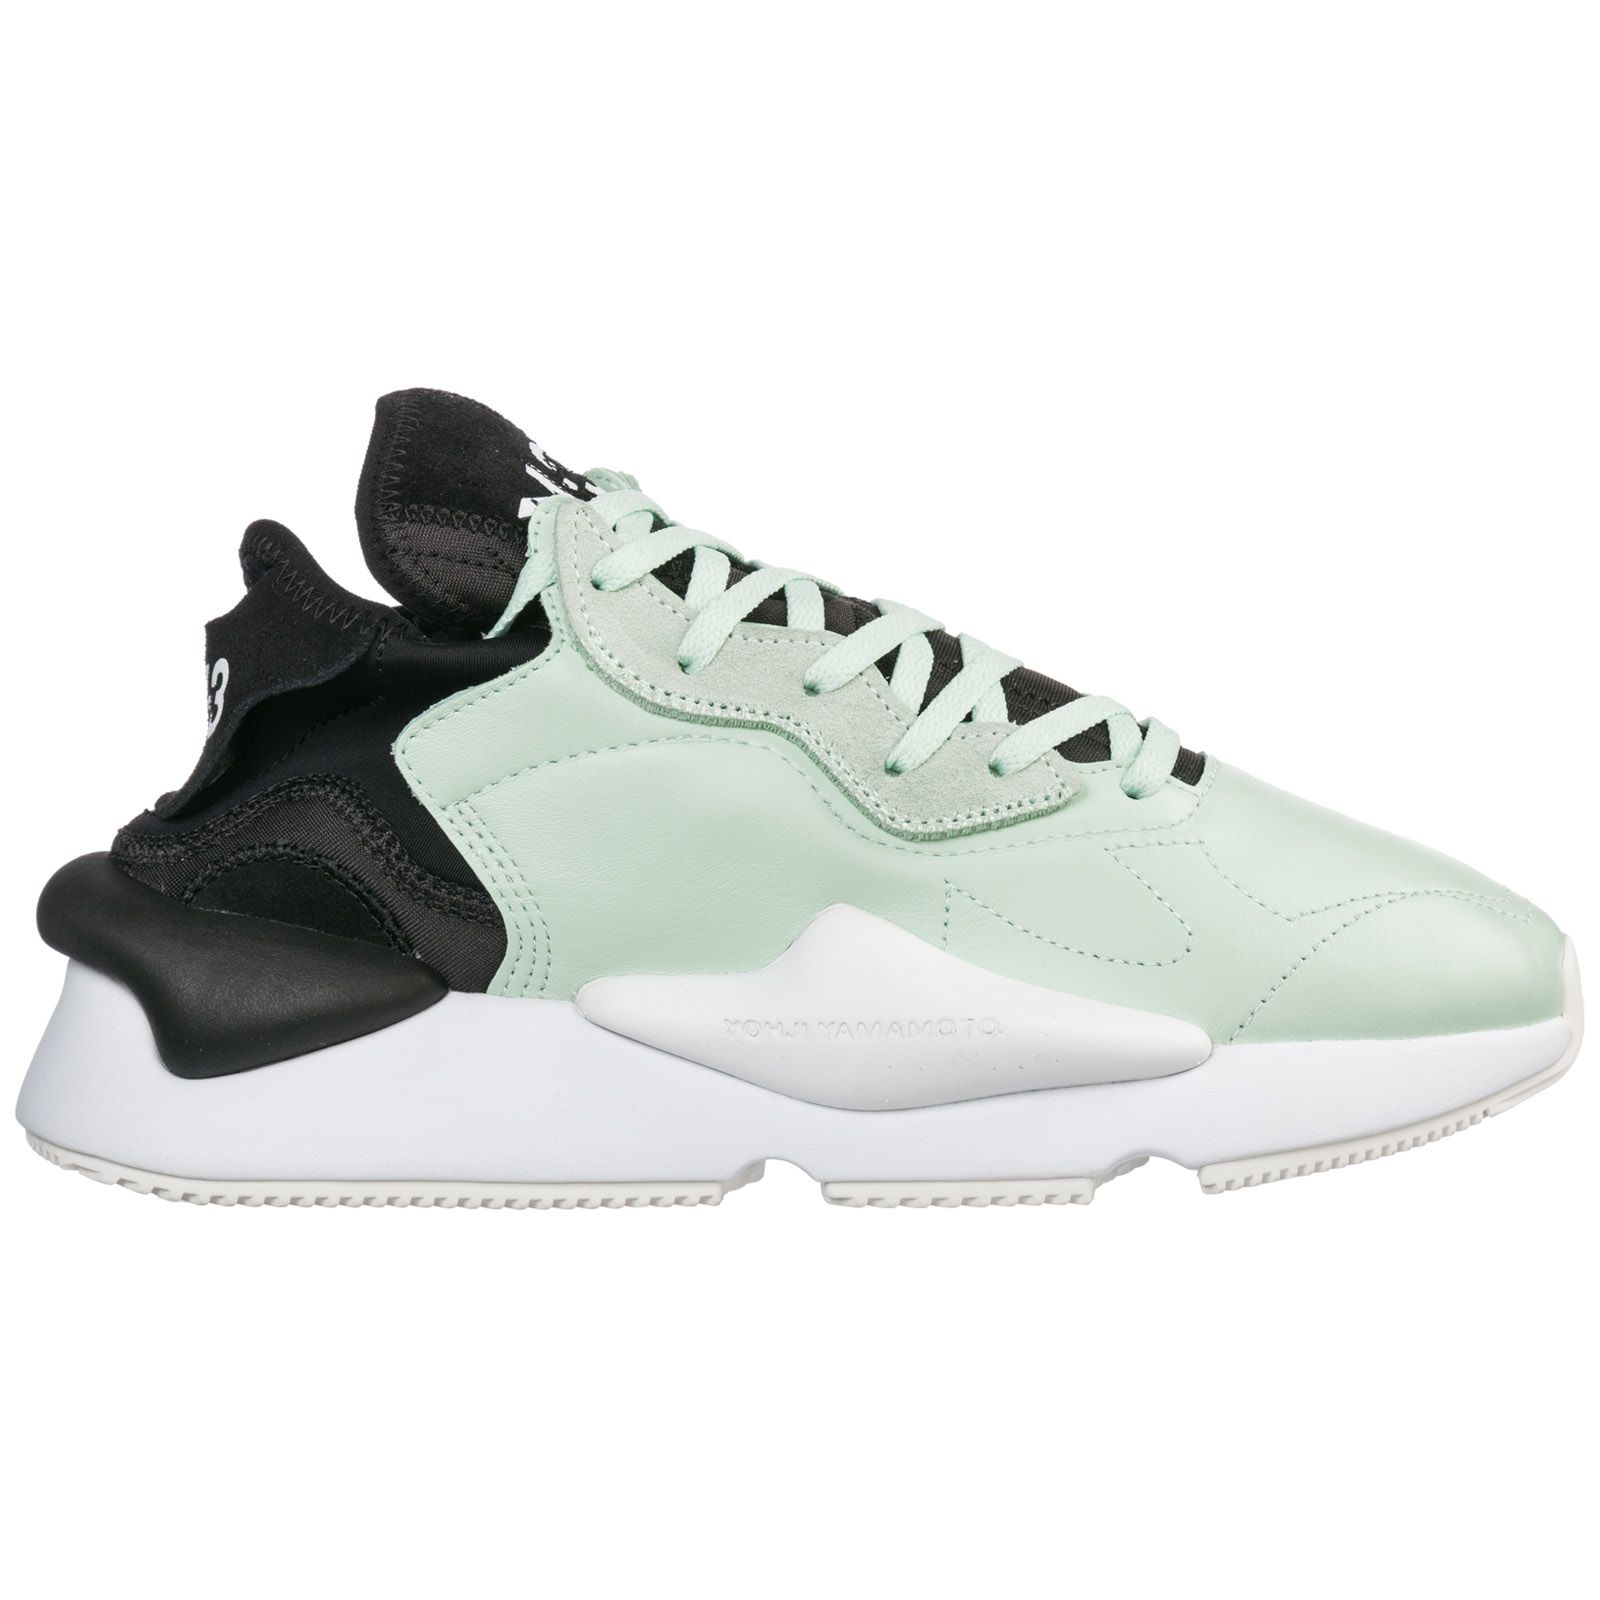 46637609b5ba9 Y-3 Y-3 Shoes Leather Trainers Sneakers Kaiwa - Green - 10901948 ...